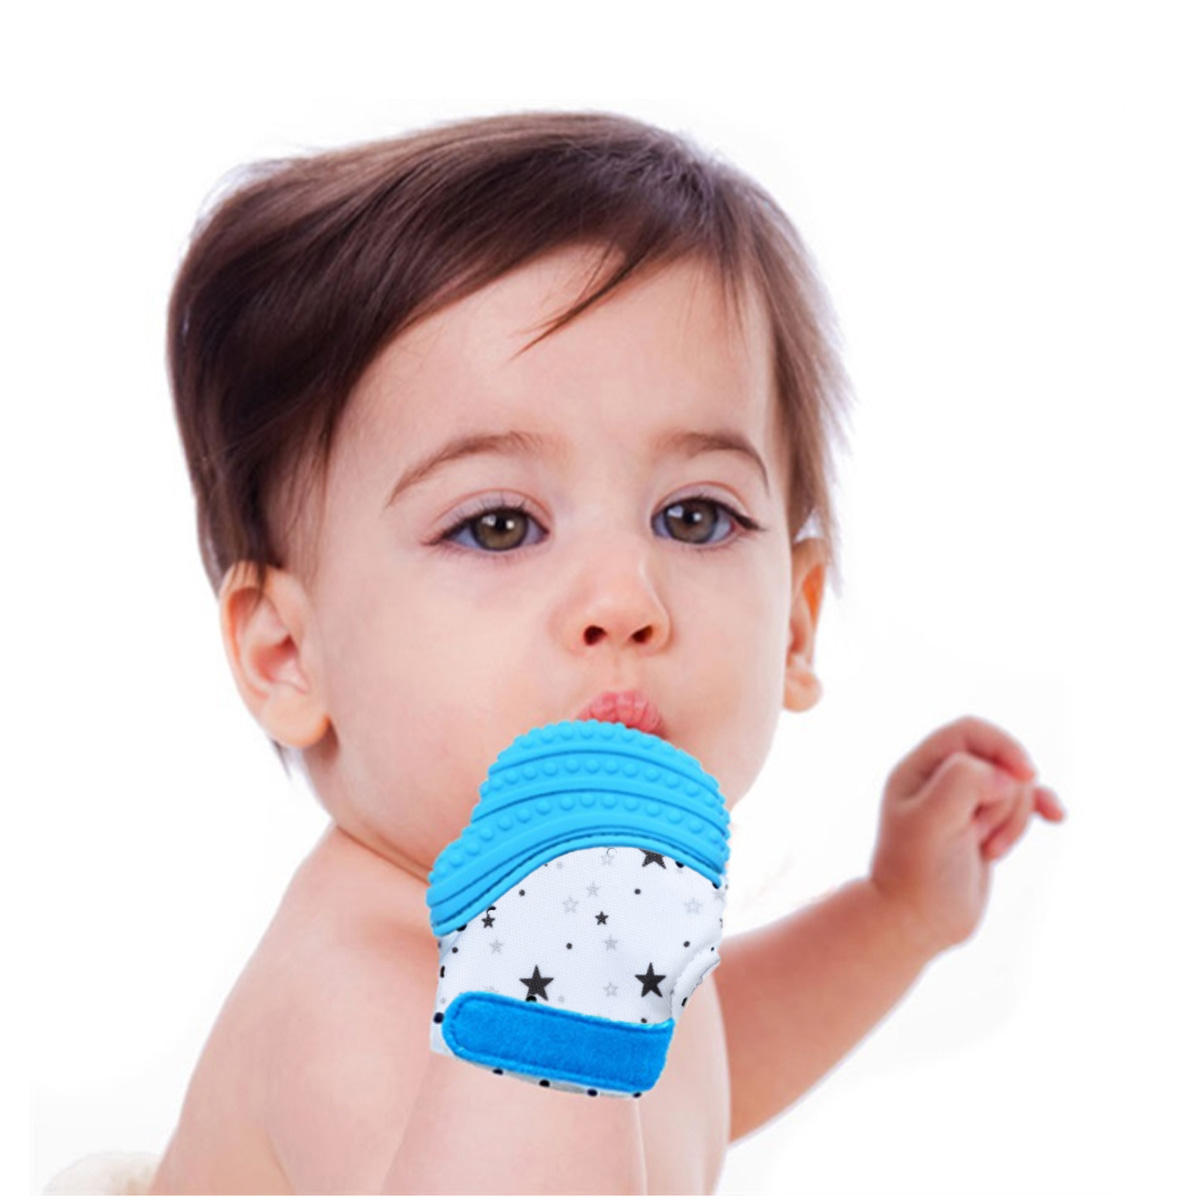 Silicone Baby Kids Munch Mitt Teething Mitten self soothing Teether Mitten for Baby Shower Outdoor Travel Teething Toys Gift